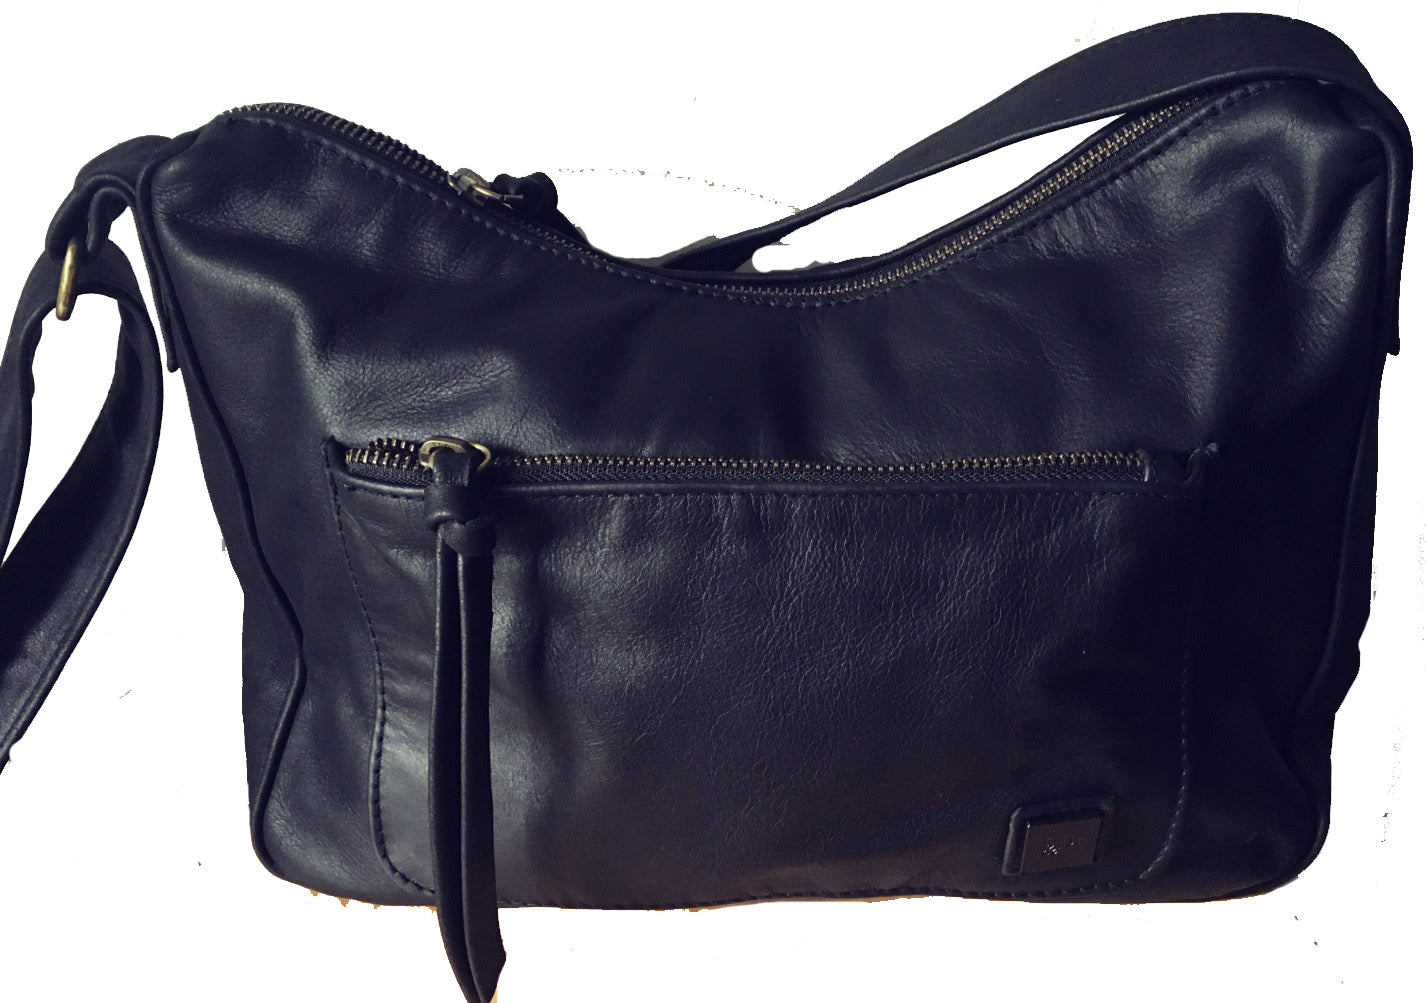 8d6622f349 The Mini Sender-Curved slouchy hobo style handmade bag with wide crossbody  strap.